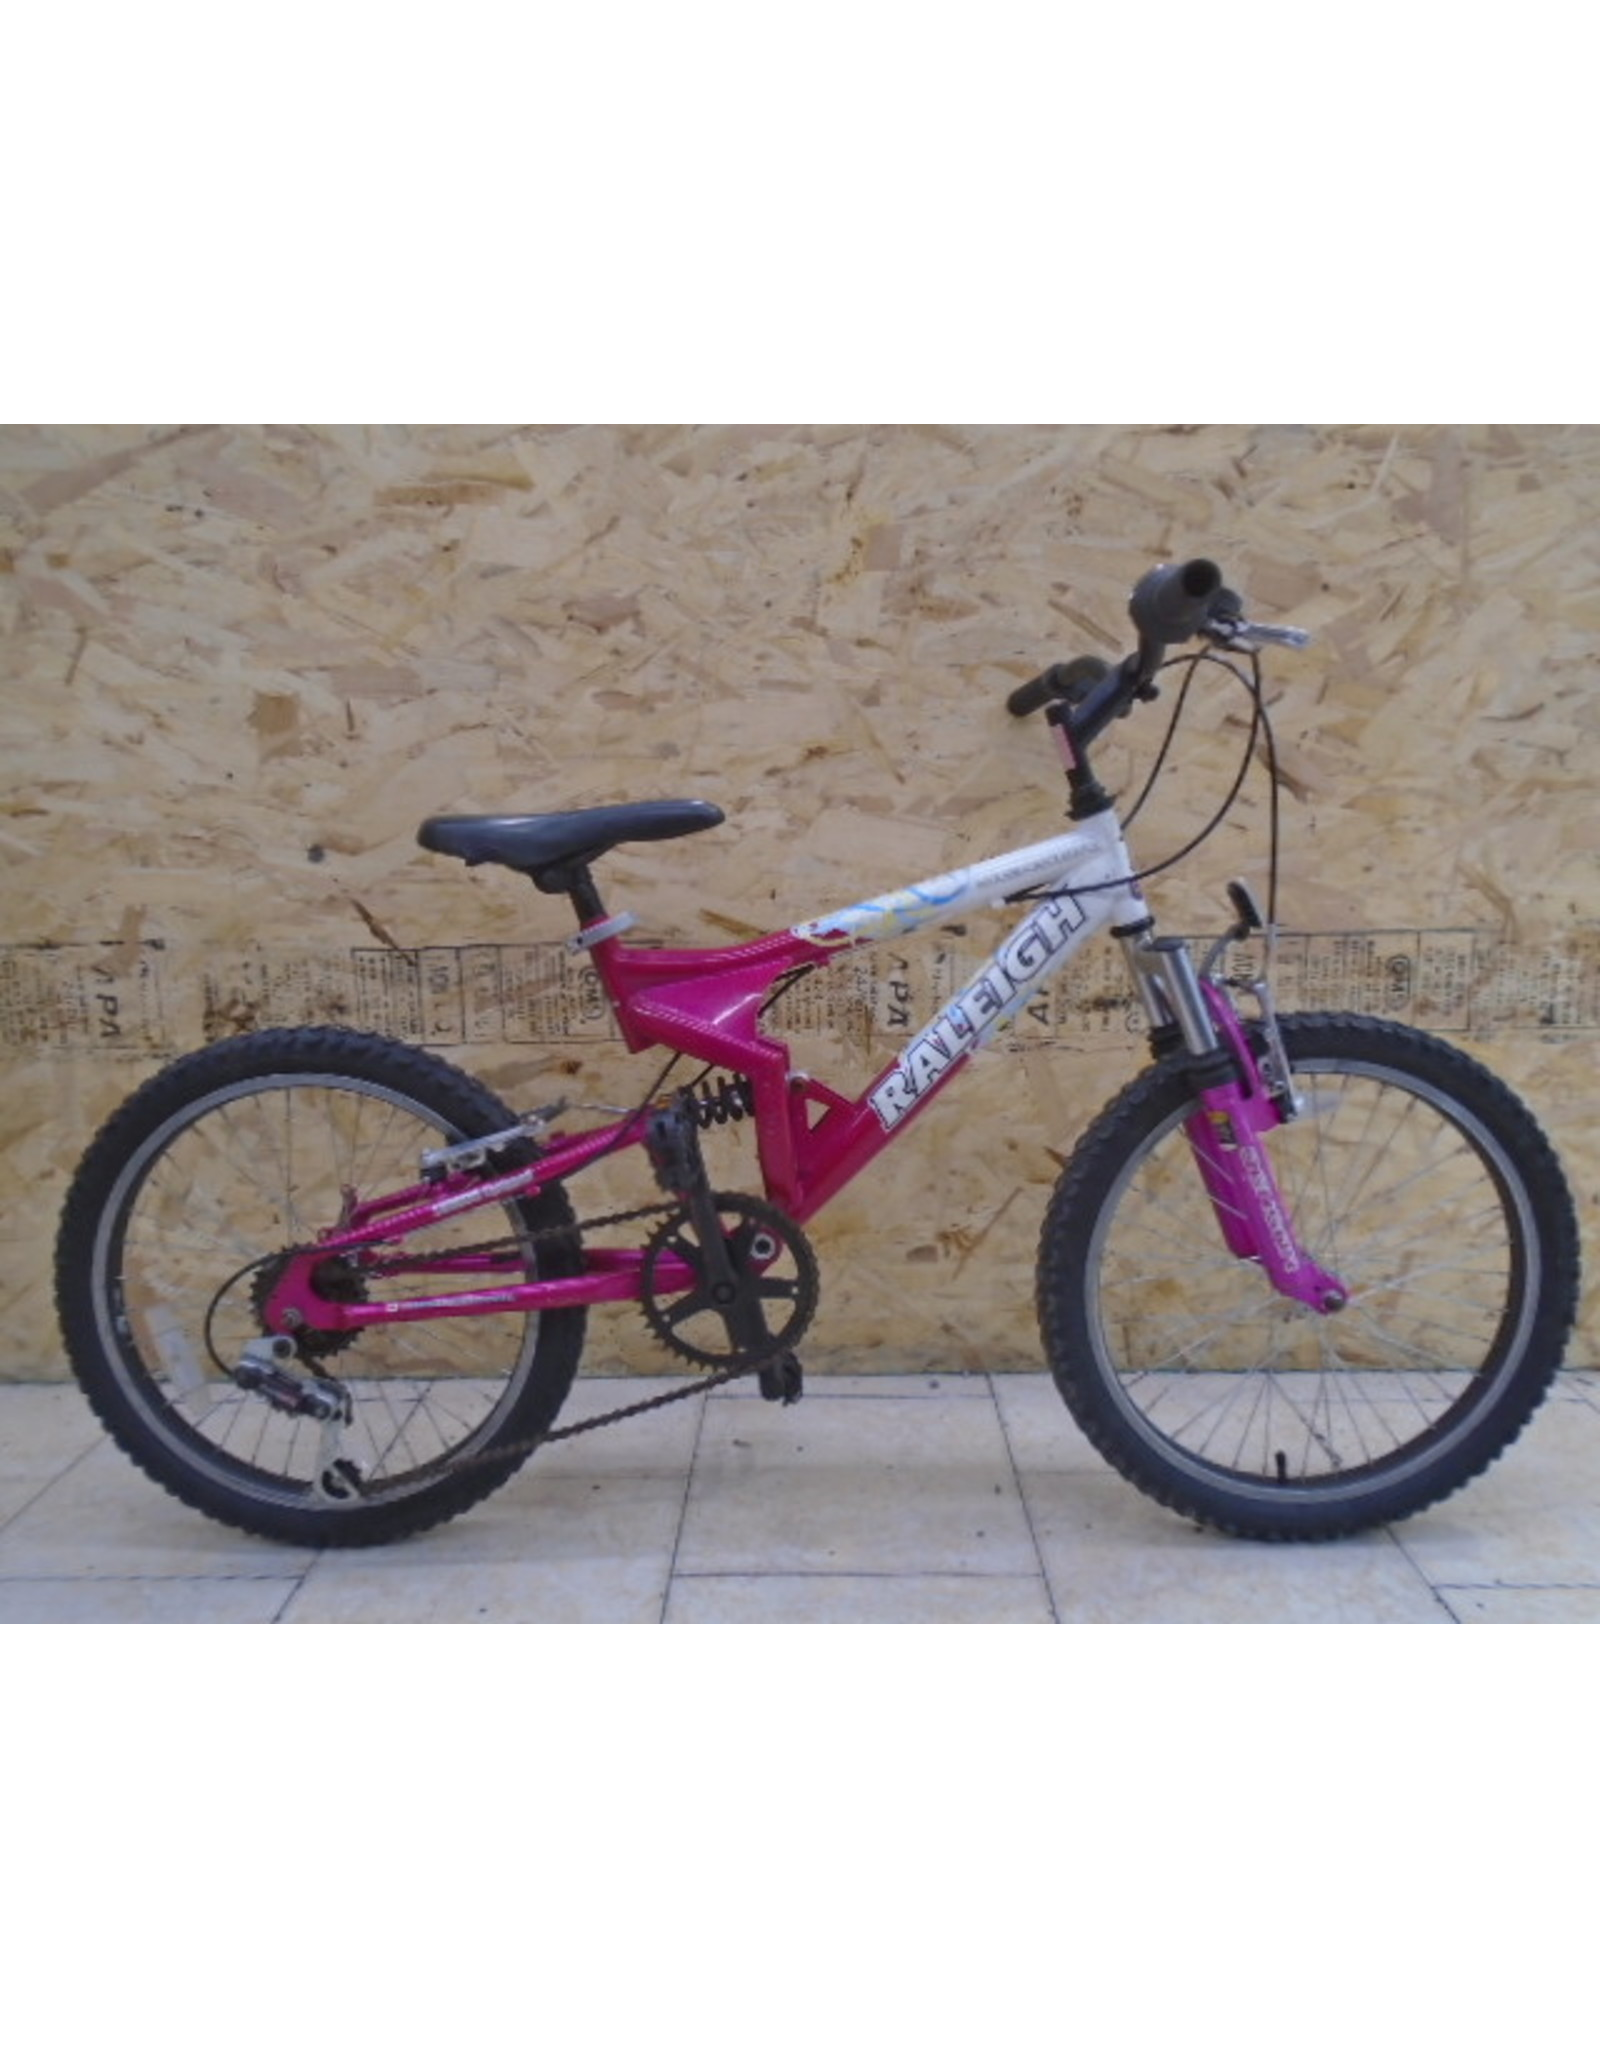 """Used Raleigh 20 """"Children's Bicycle - 9749"""